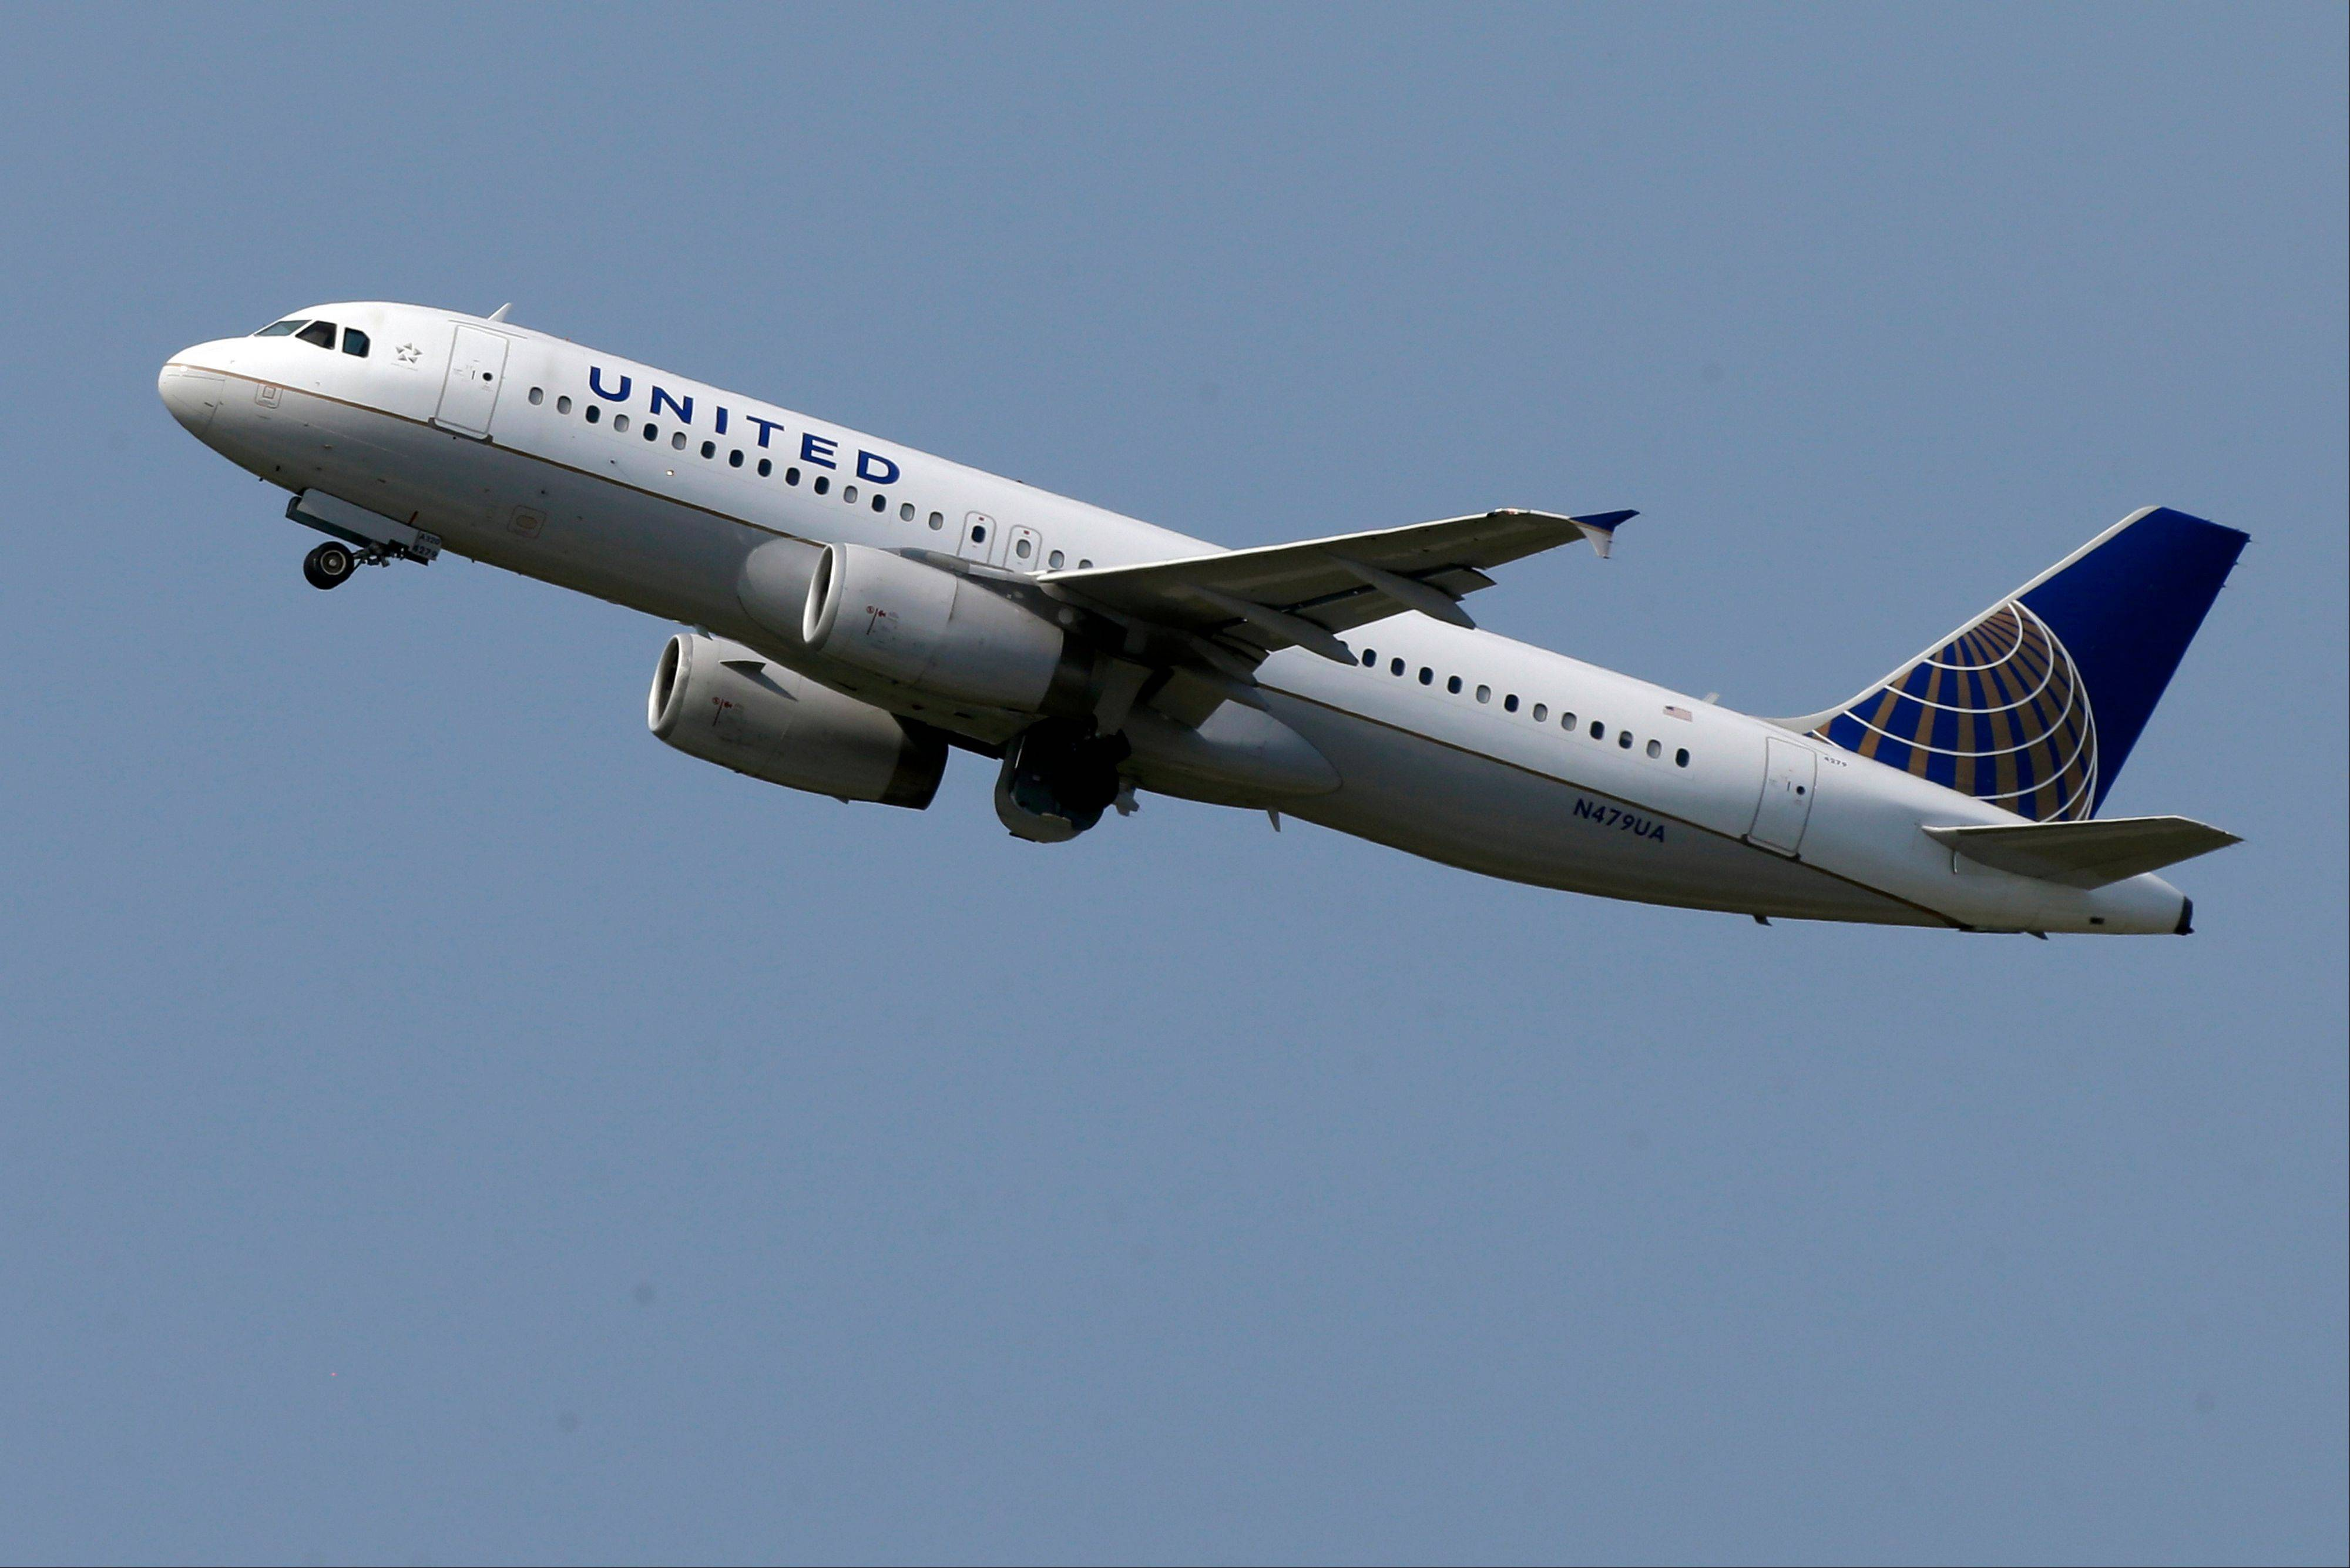 The parent of United Airlines says its profit rose 38 percent as it spent less on fuel and slightly boosted fares.